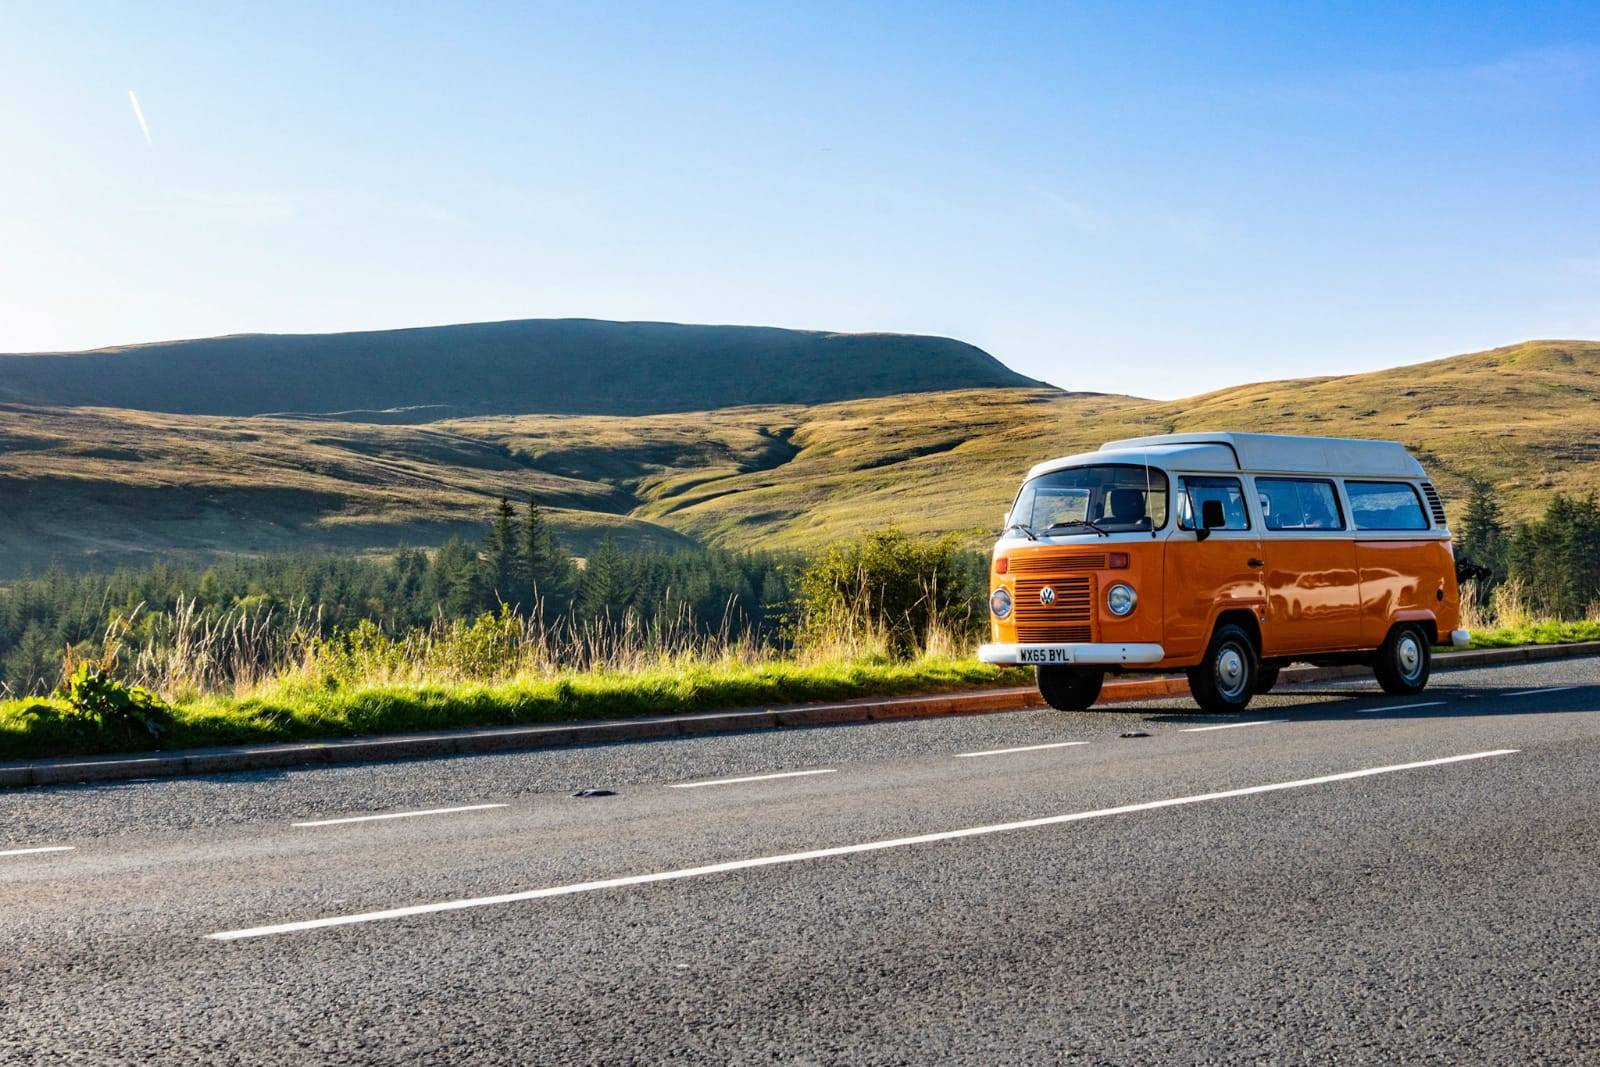 A VW T2 Brazilian Campervan called Terry and Exploring the Brecon Beacons for hire in chippenham, Wiltshire